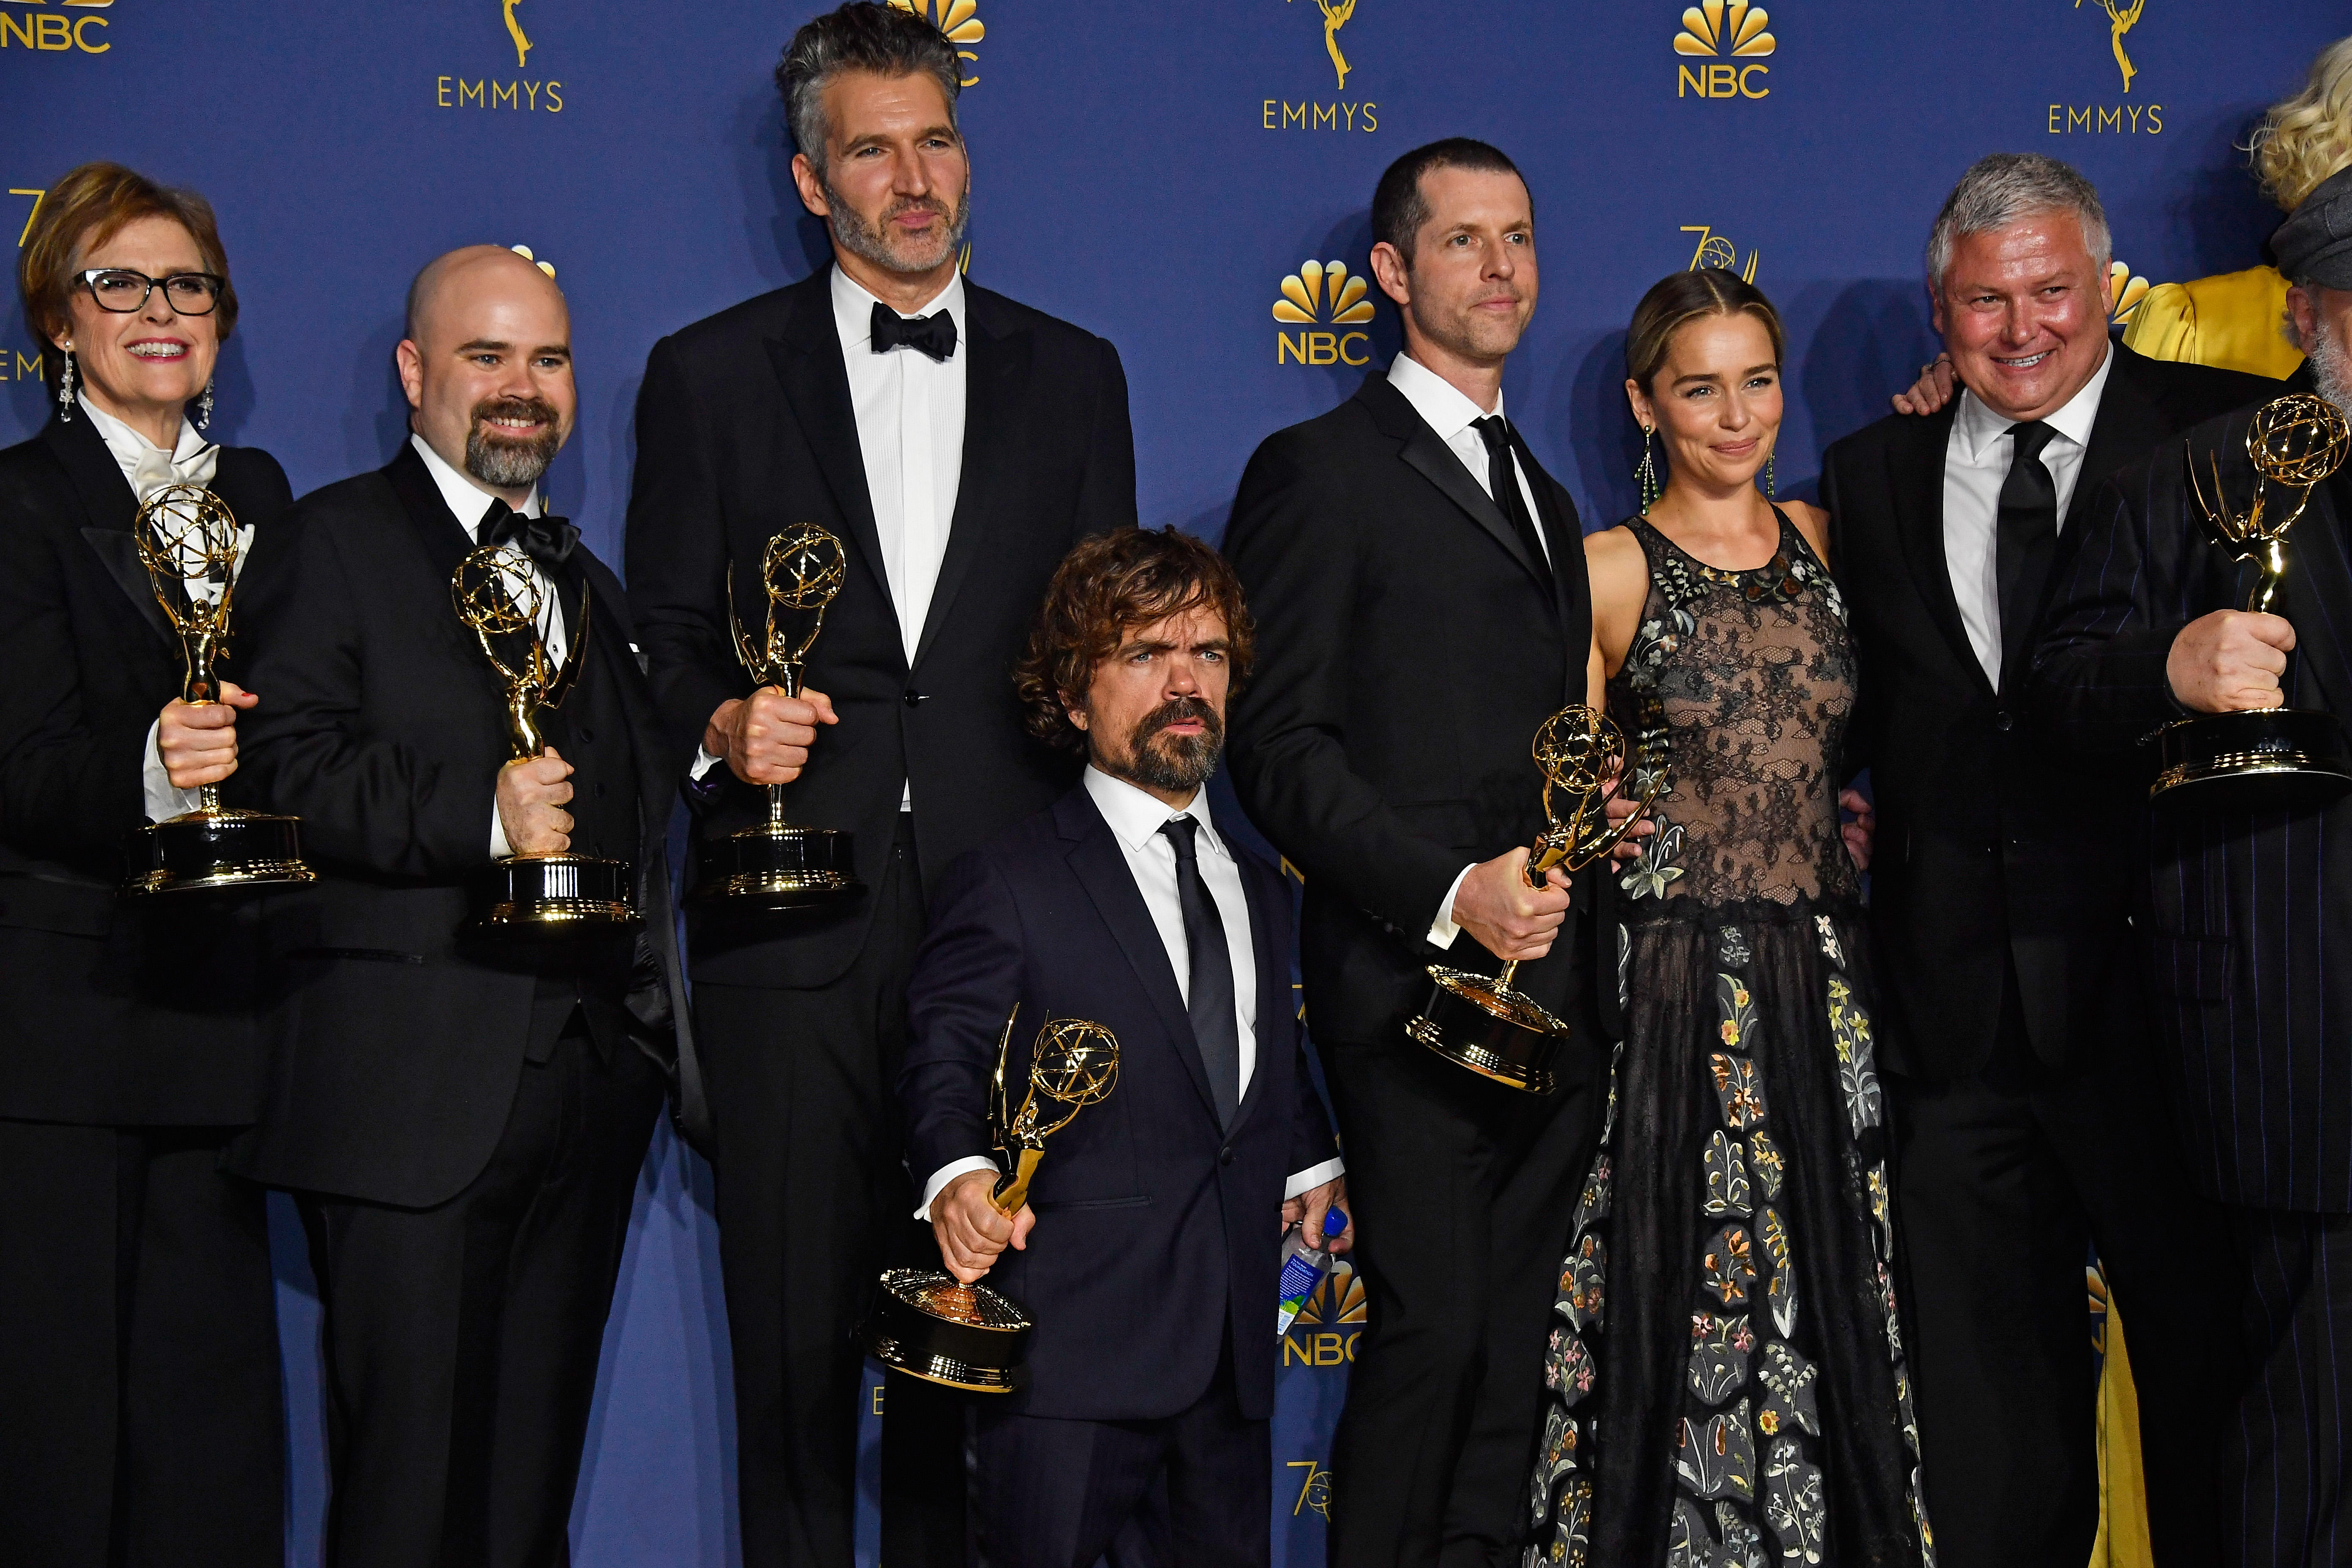 Game of Thrones cast and crew at the 70th Emmy Awards in September 2018